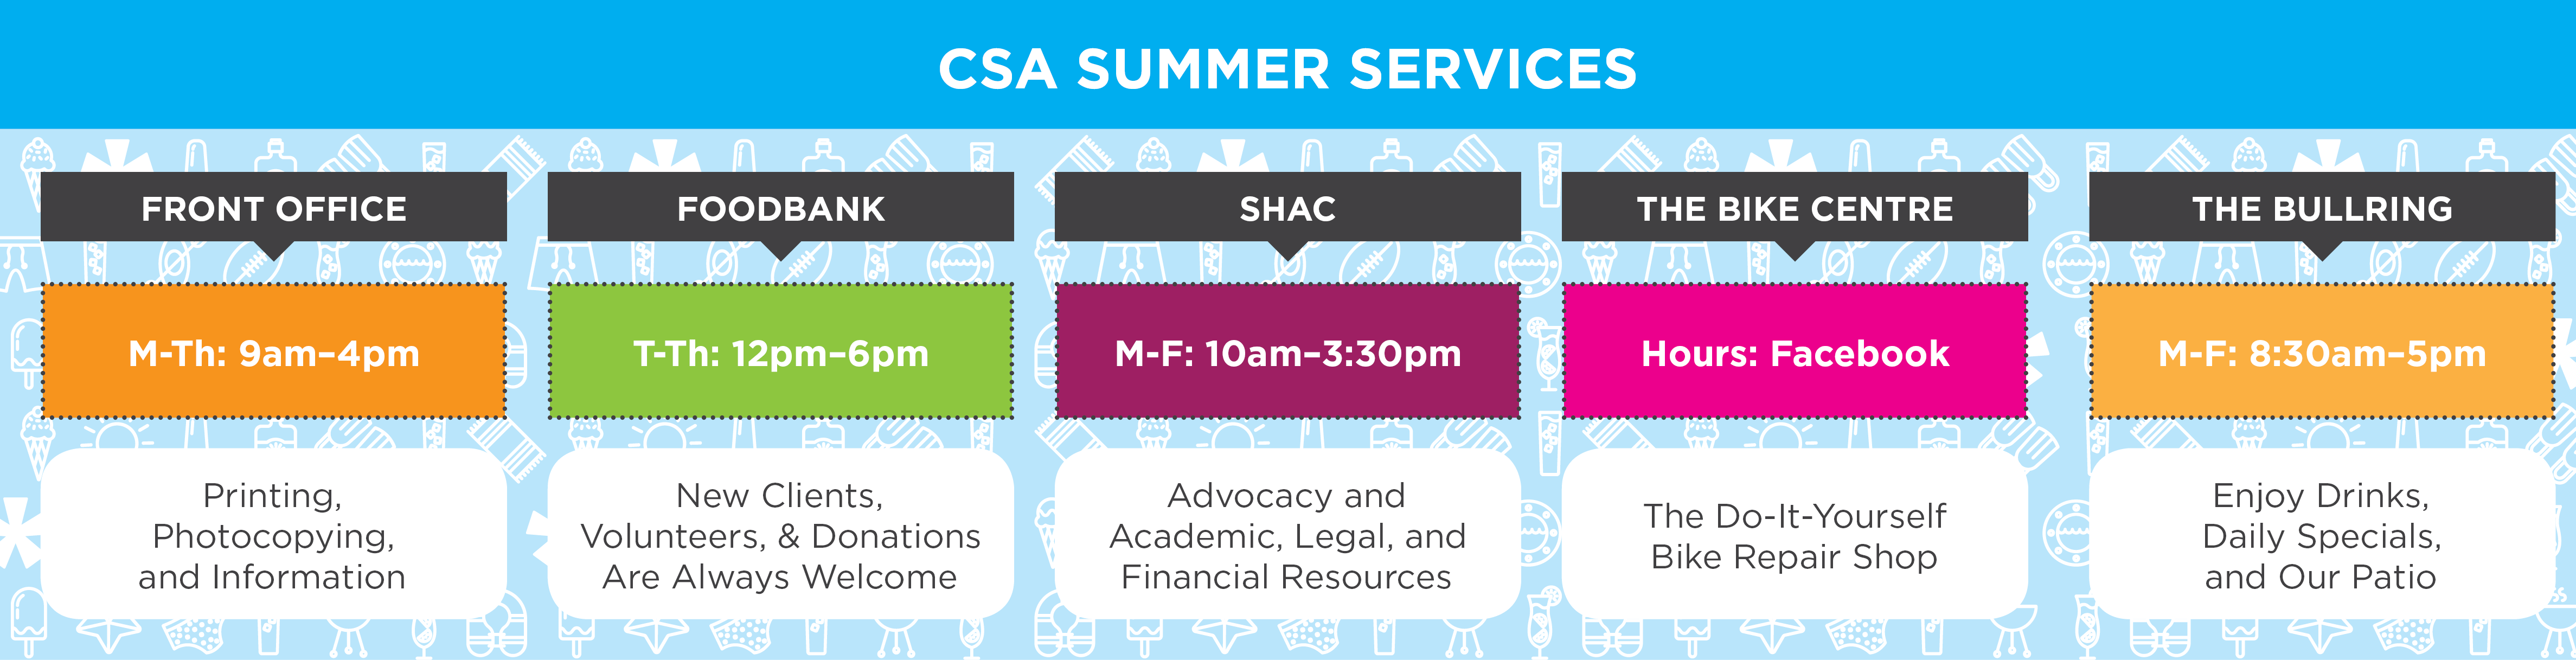 CSA Summer Services: CSA Front Office, FoodBank, SHAC, The Bike Centre, The Bullring